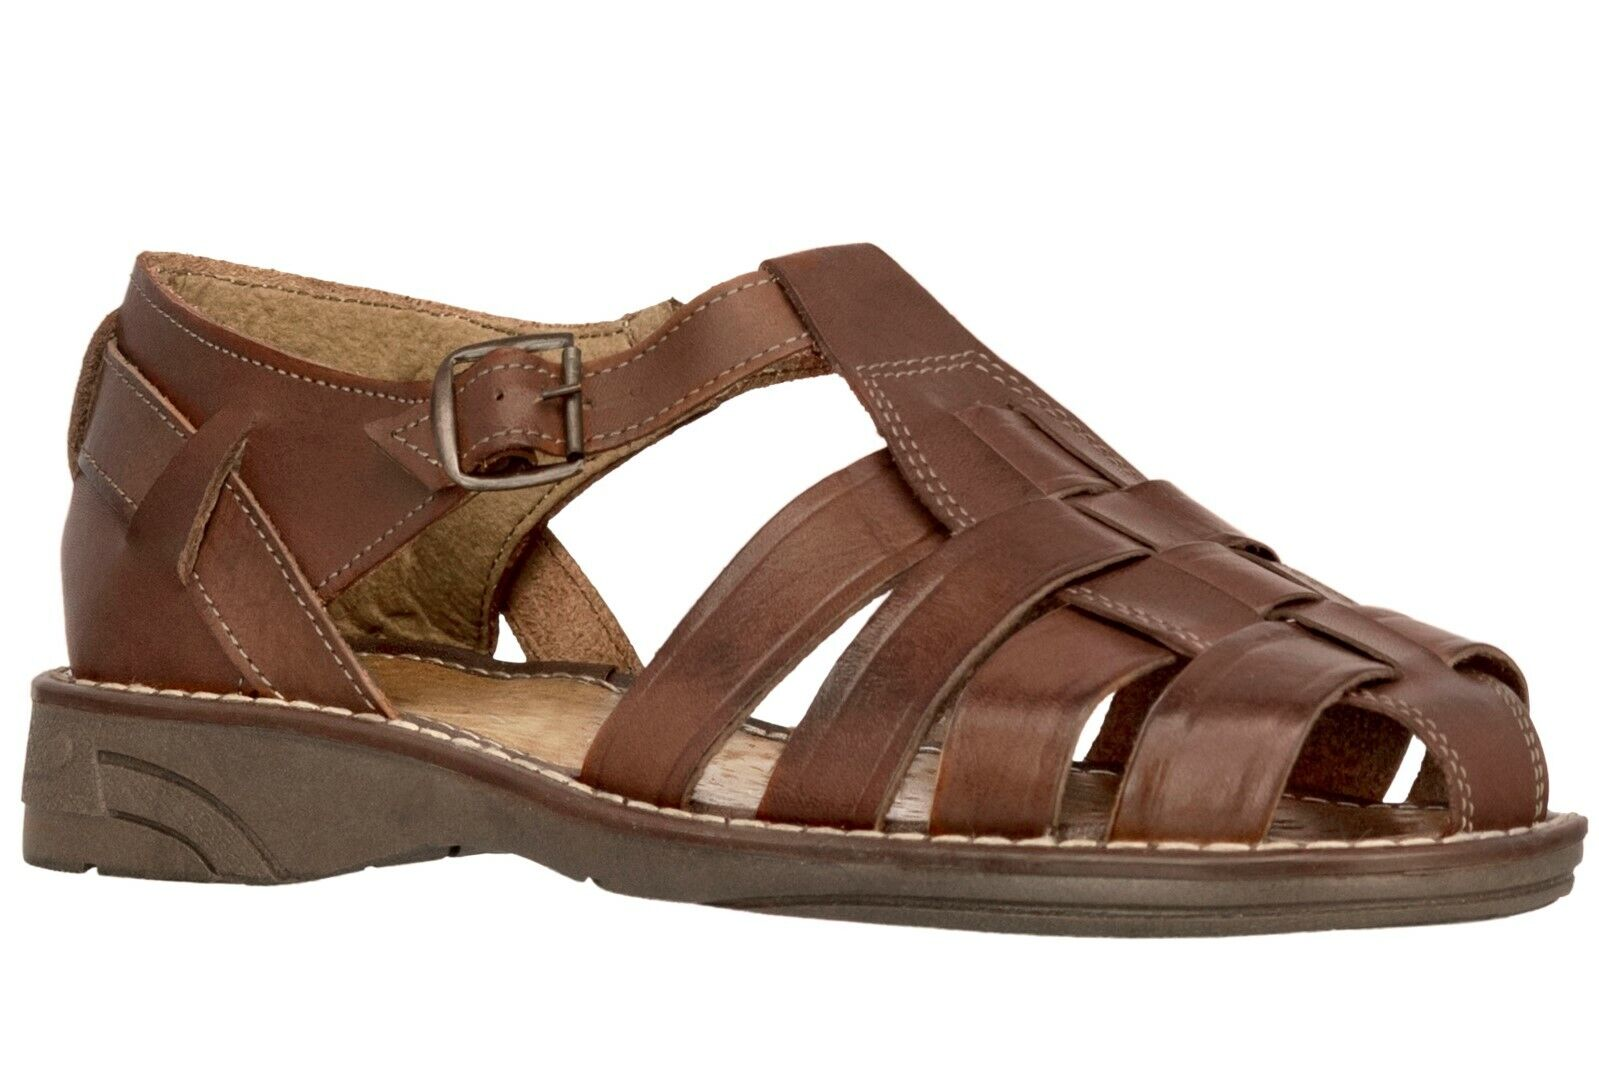 Men's Mexican Huaraches Real Leather Brown Sandals Strapped Closed Shoes 1